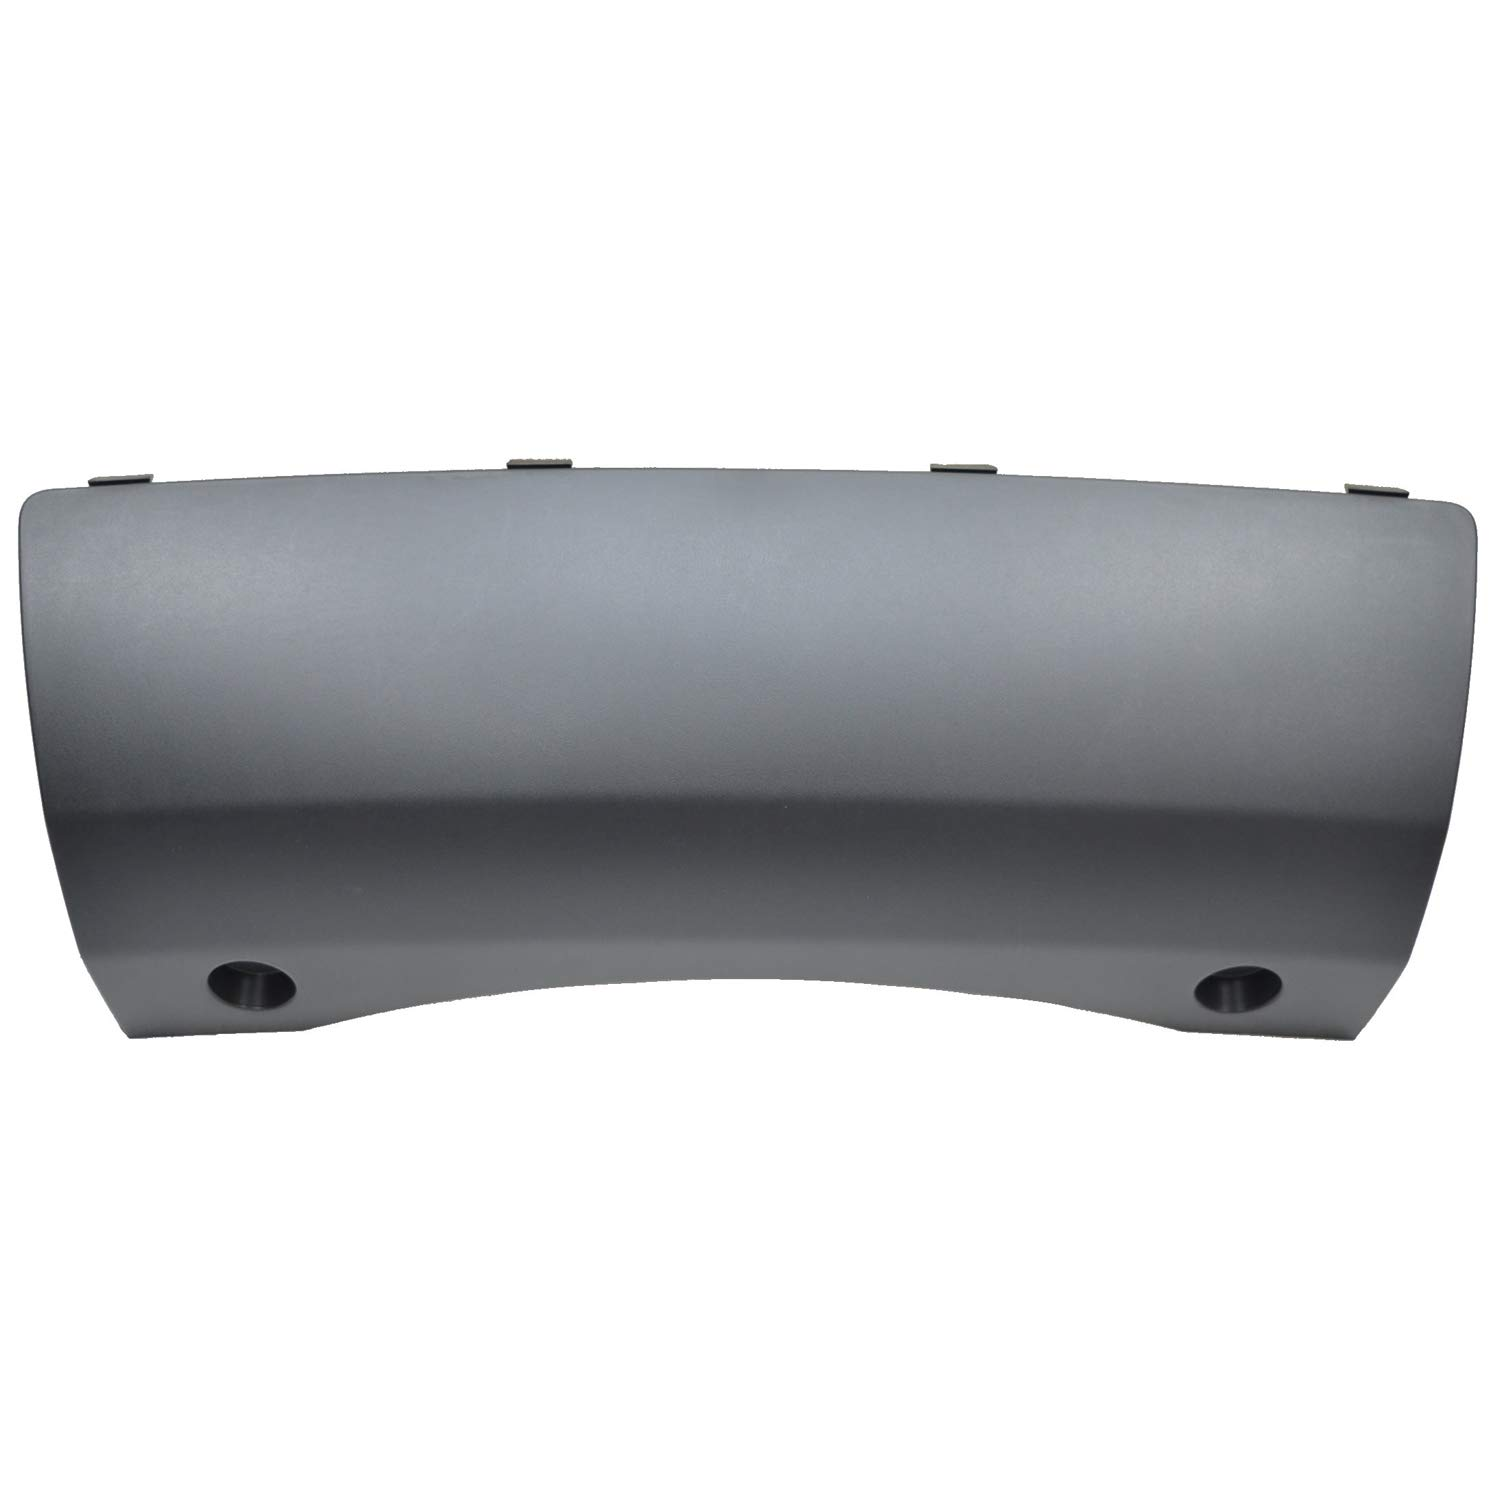 CH1180138 Trailer Hitch Cover compatible with 2014-2018 Dodge Durango by CPP